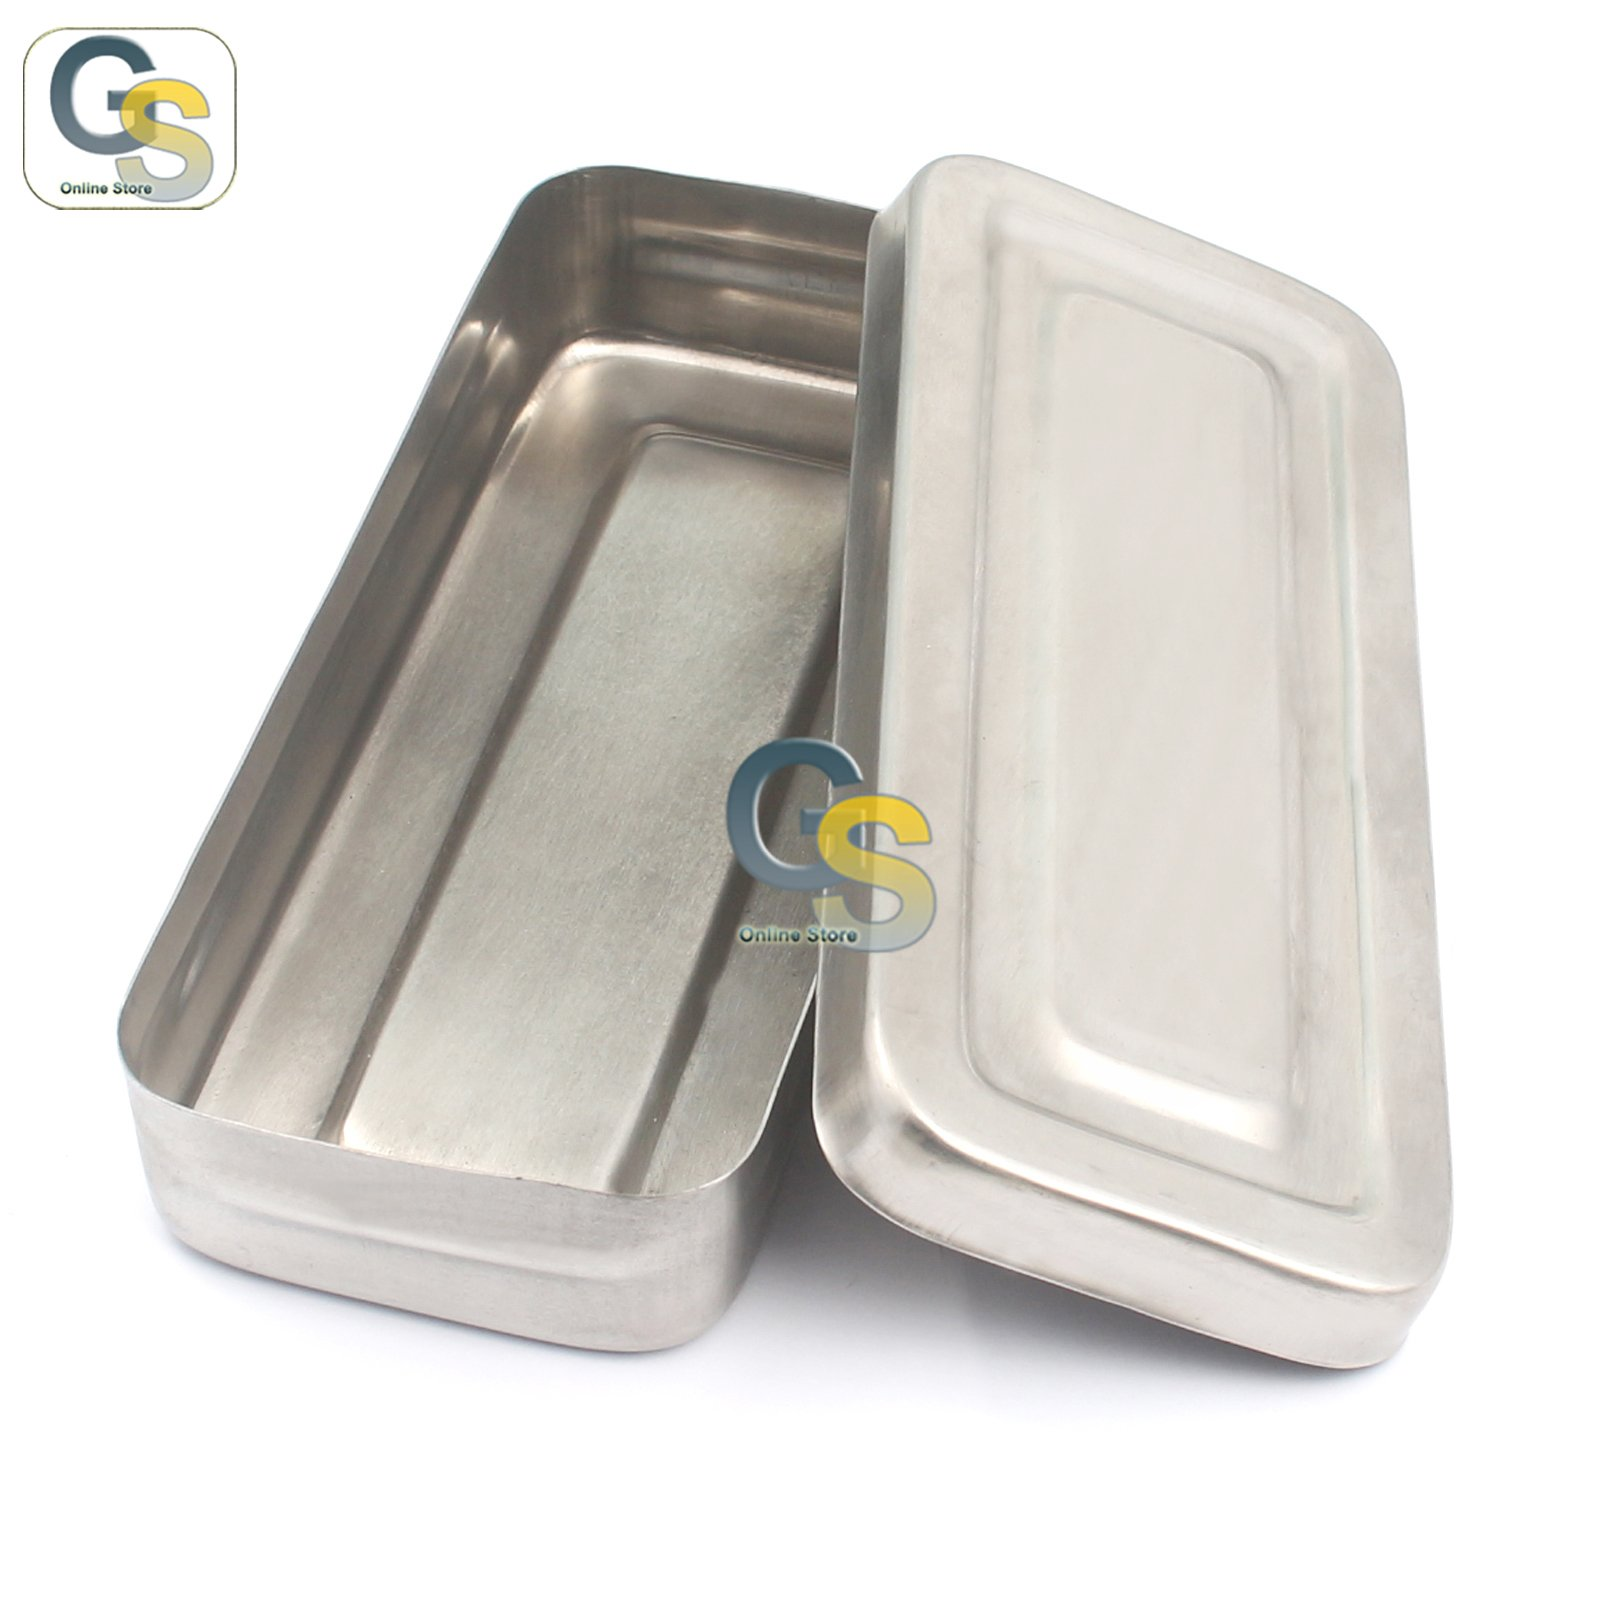 G.S DENTAL VETERINARY BOX 7'' X 3'' X 1'' BEST QUALITY